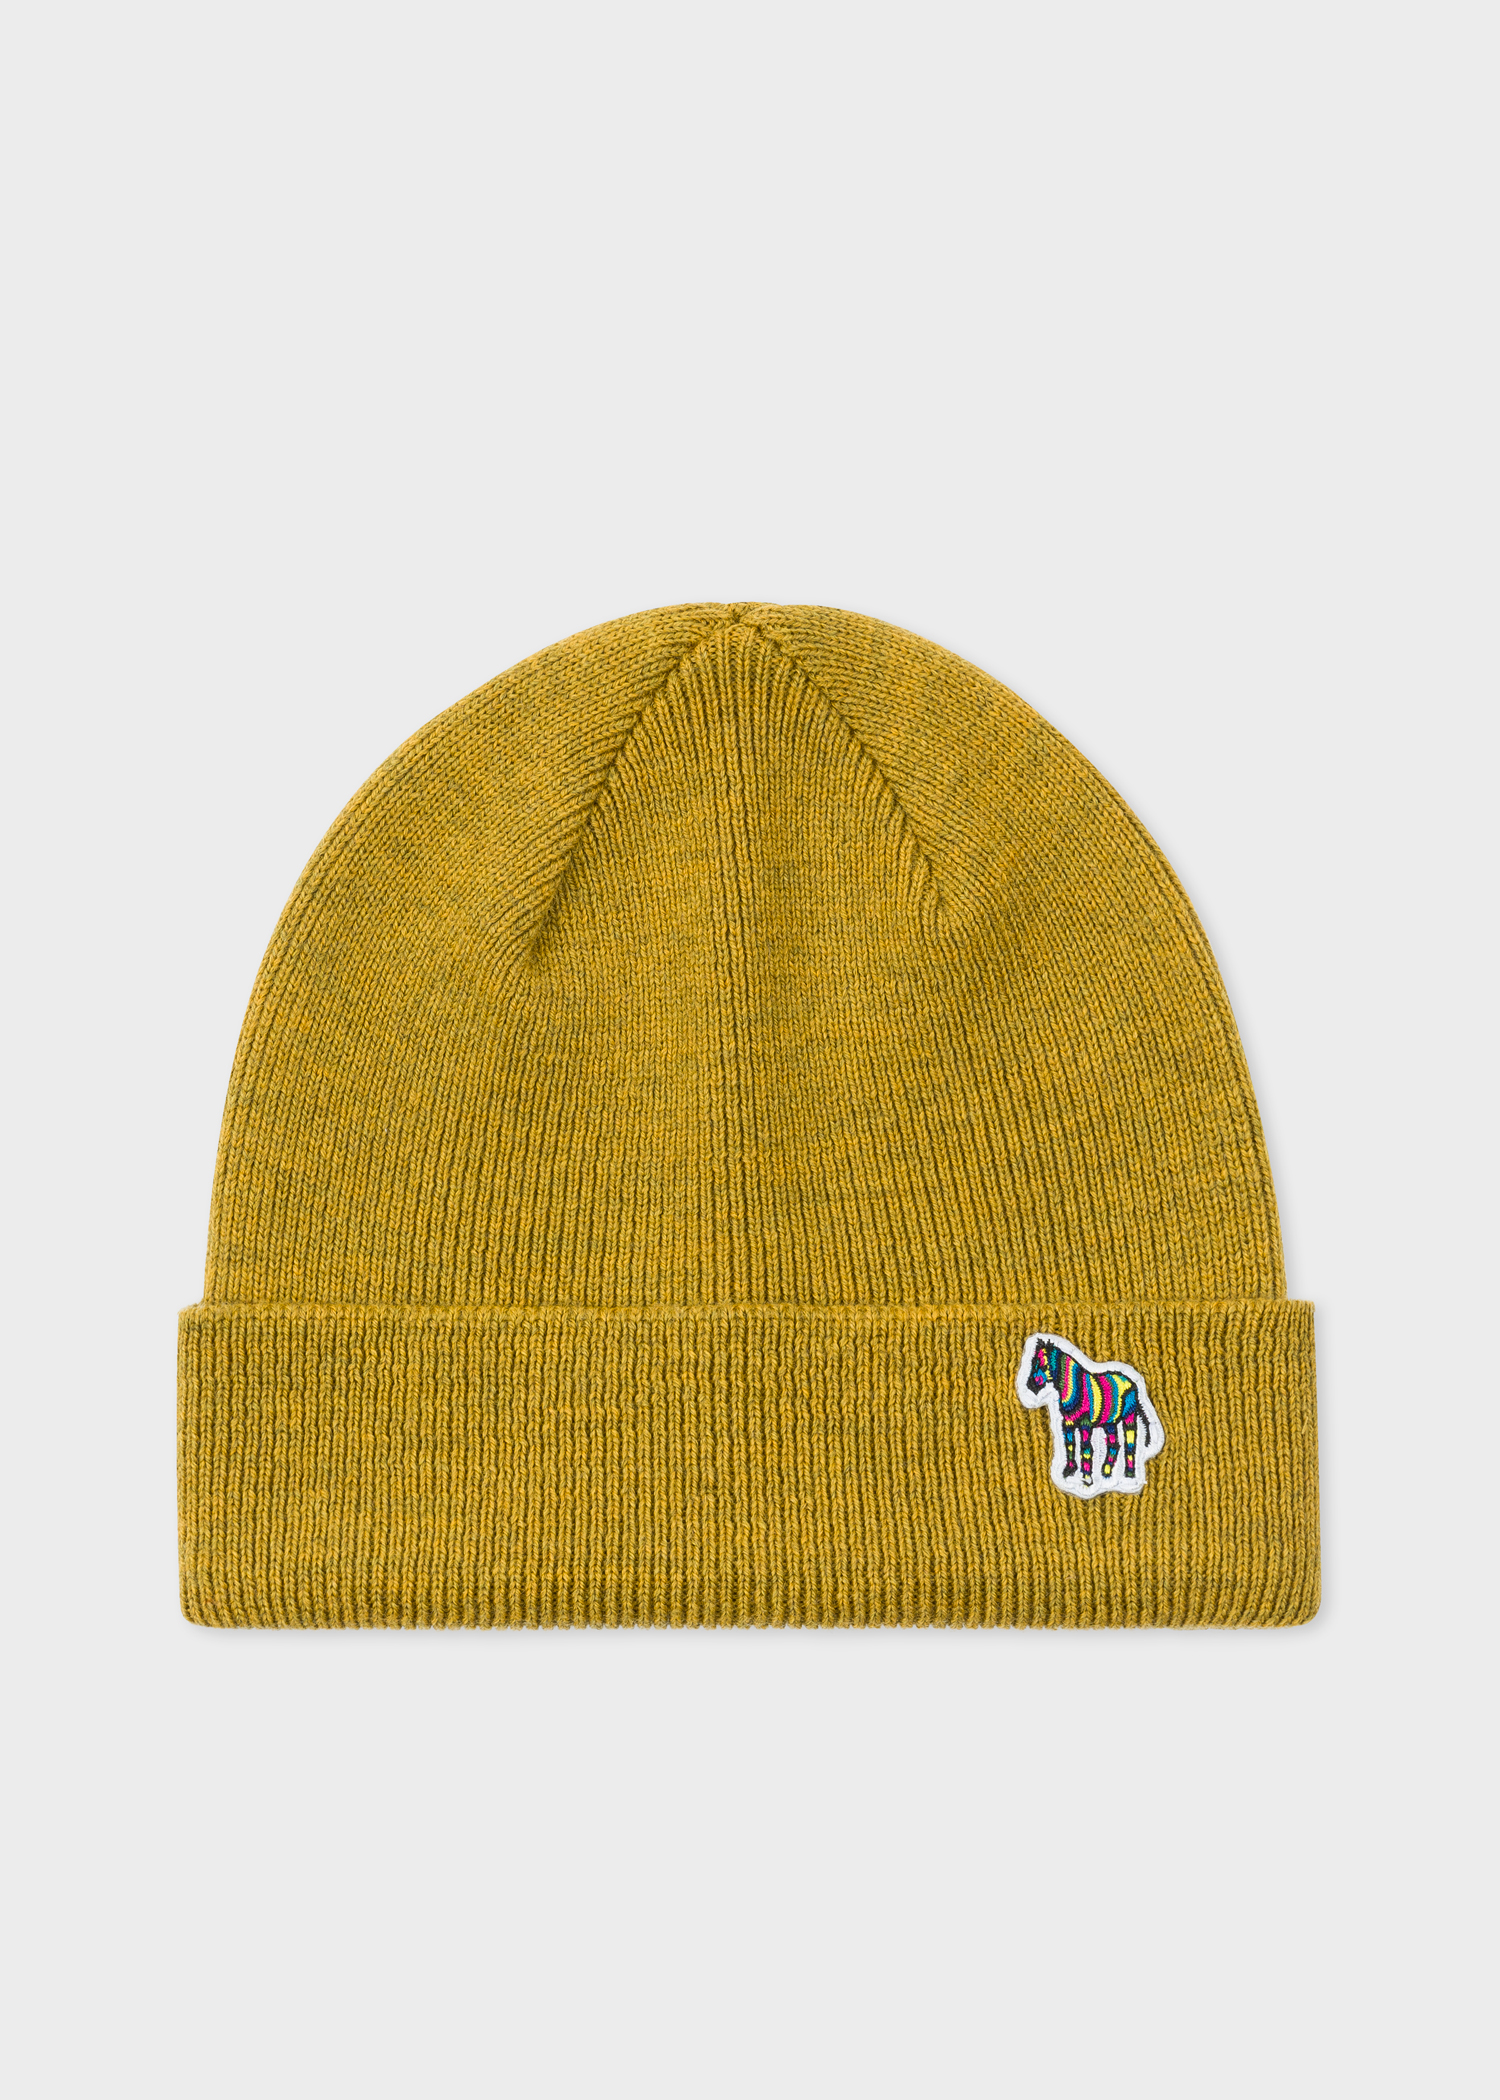 dbf9849a0e2 Front view - Men s Mustard  Zebra  Logo Ribbed Lambswool Beanie Hat Paul  Smith